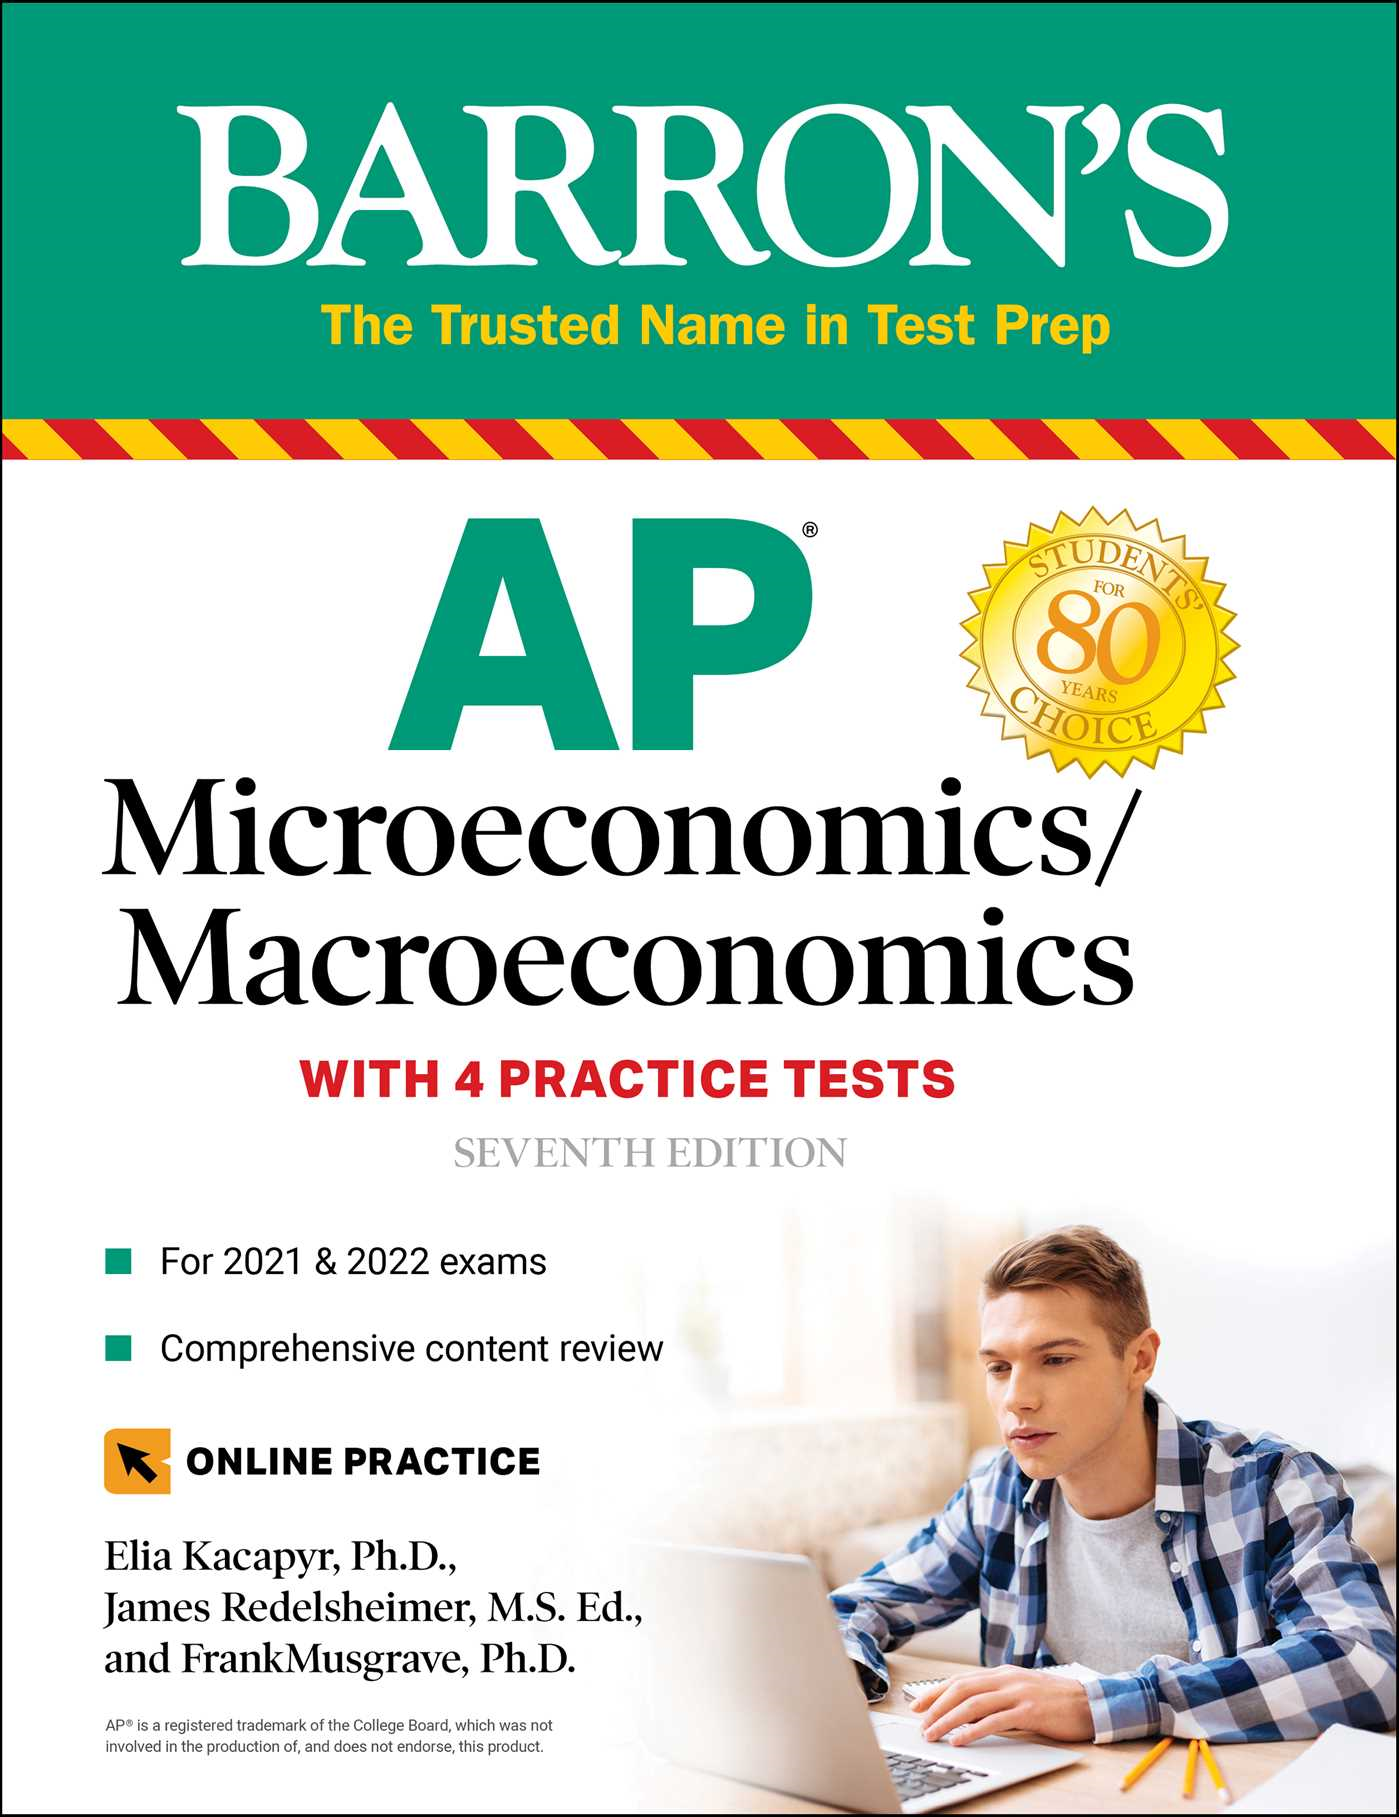 AP Microeconomics/Macroeconomics with 4 Practice Tests